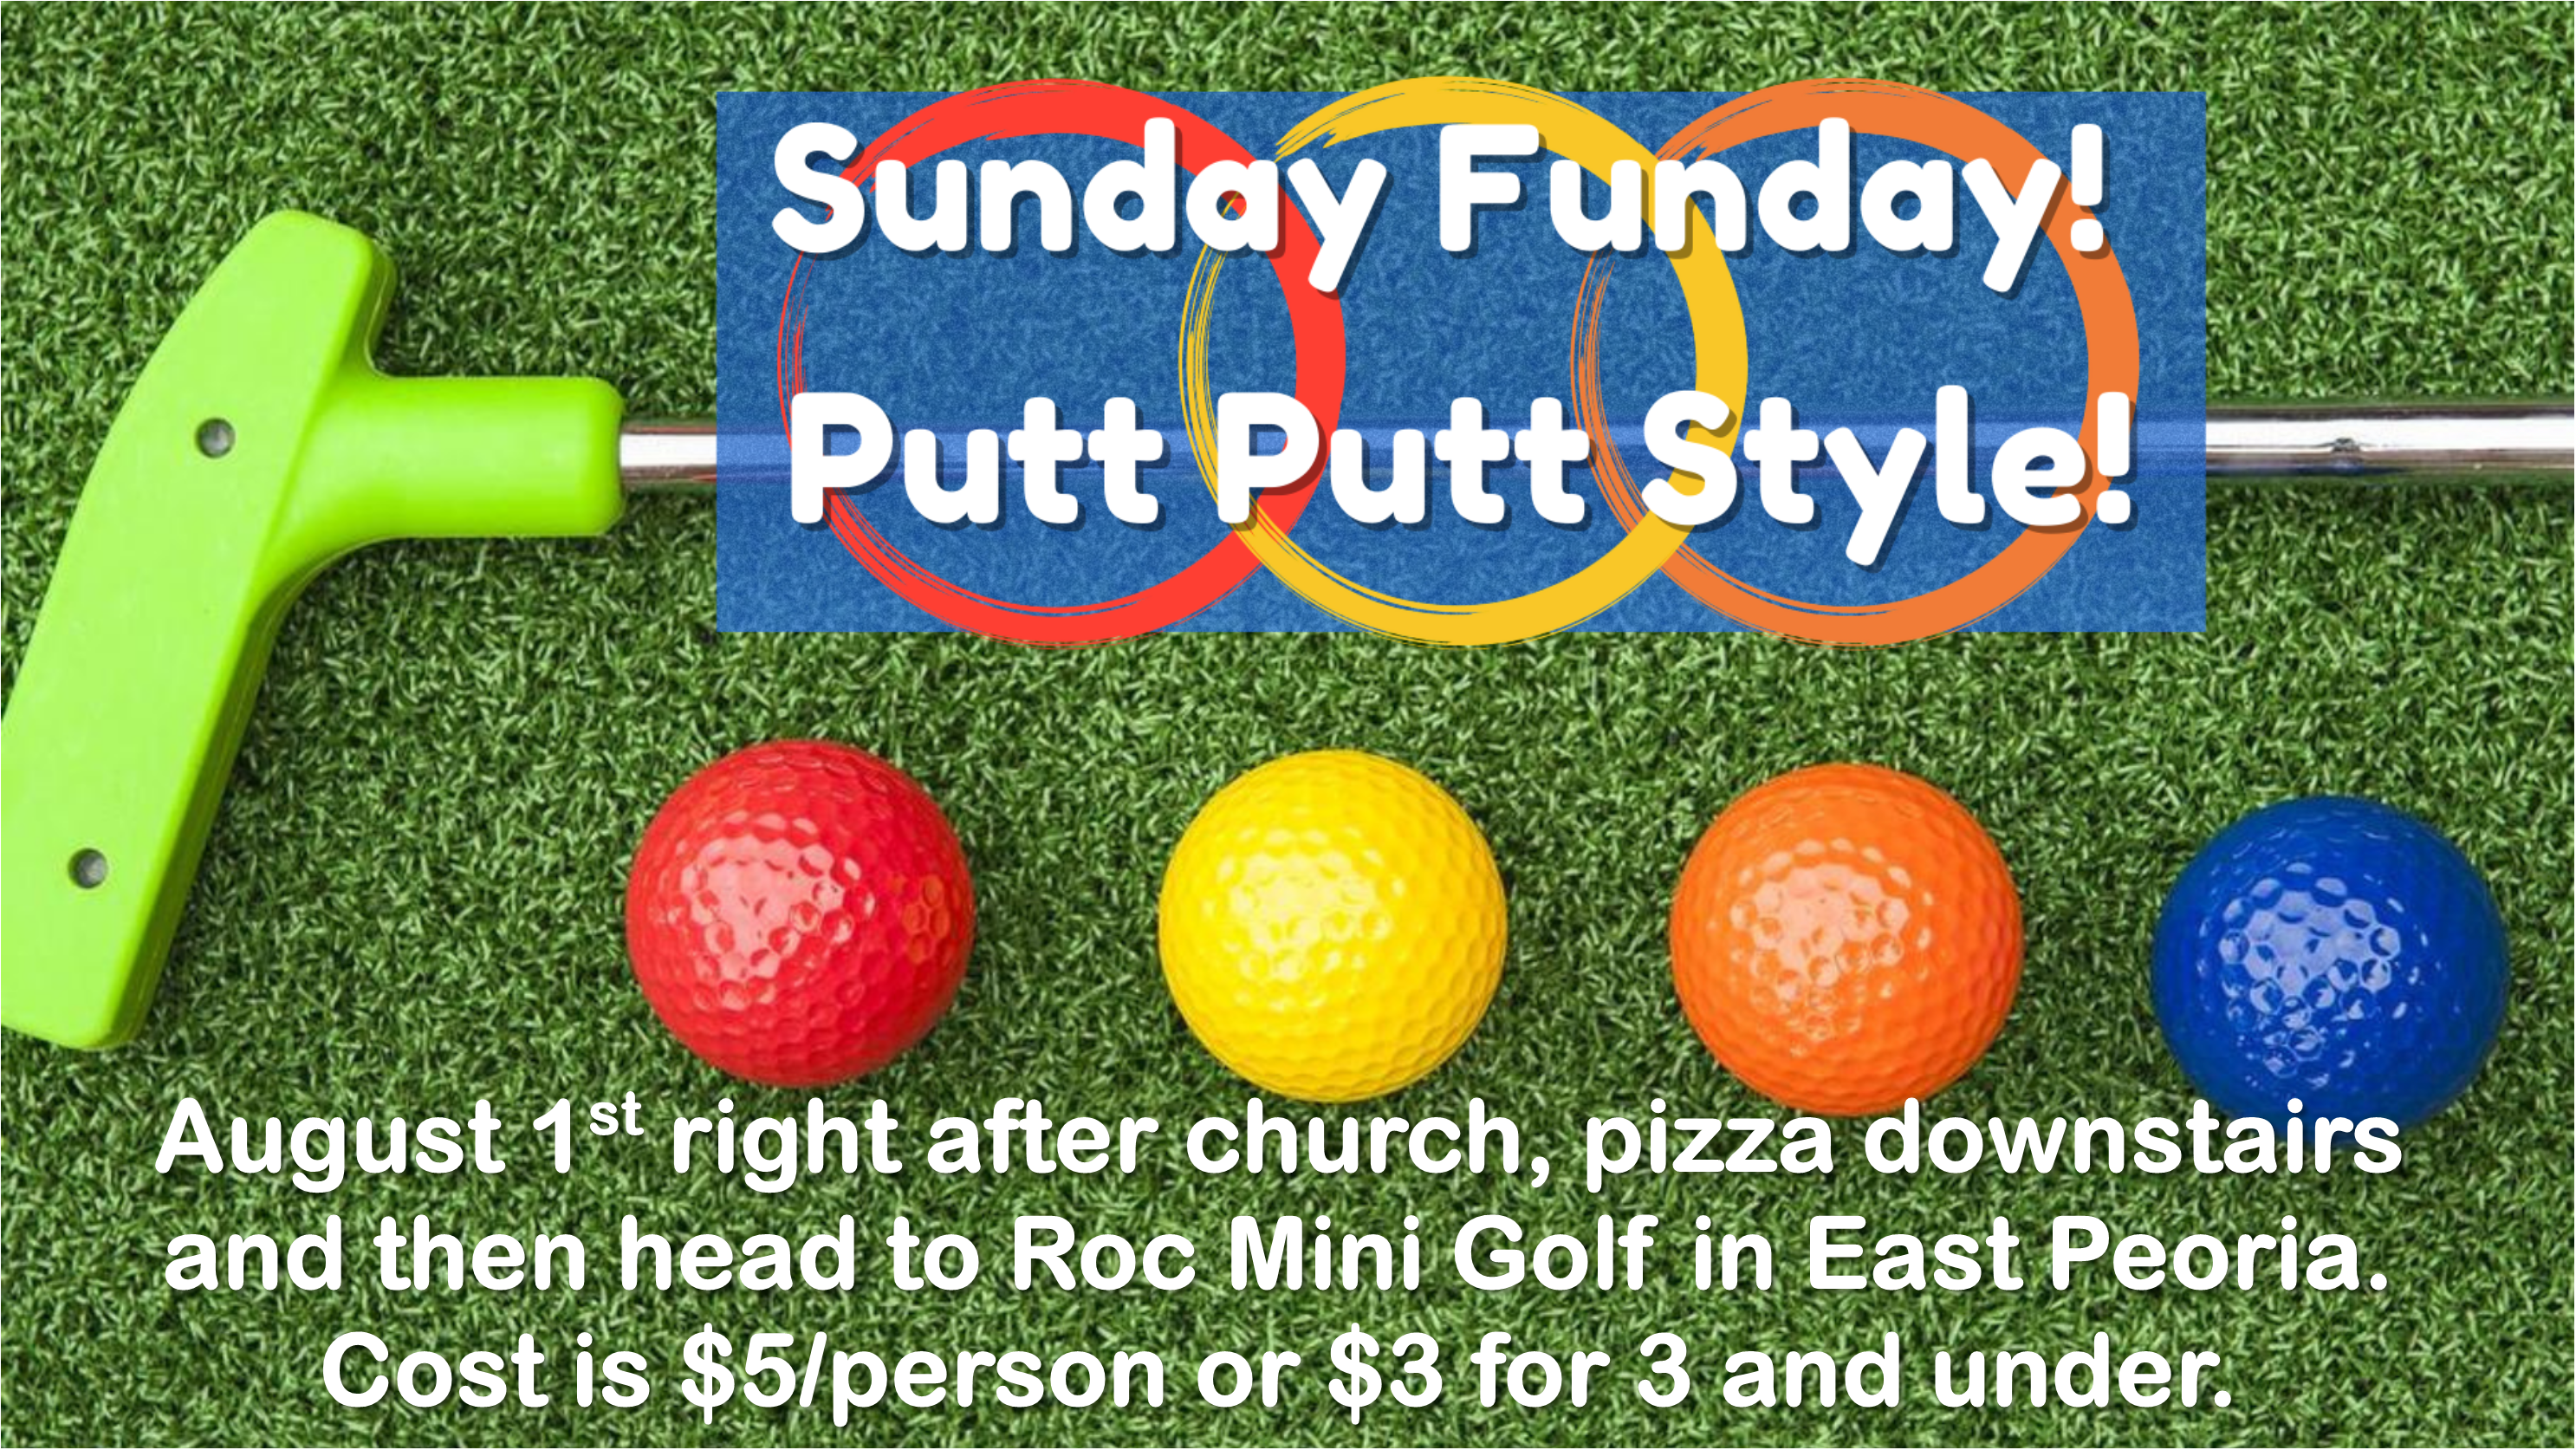 Sunday Funday Announcement Slide